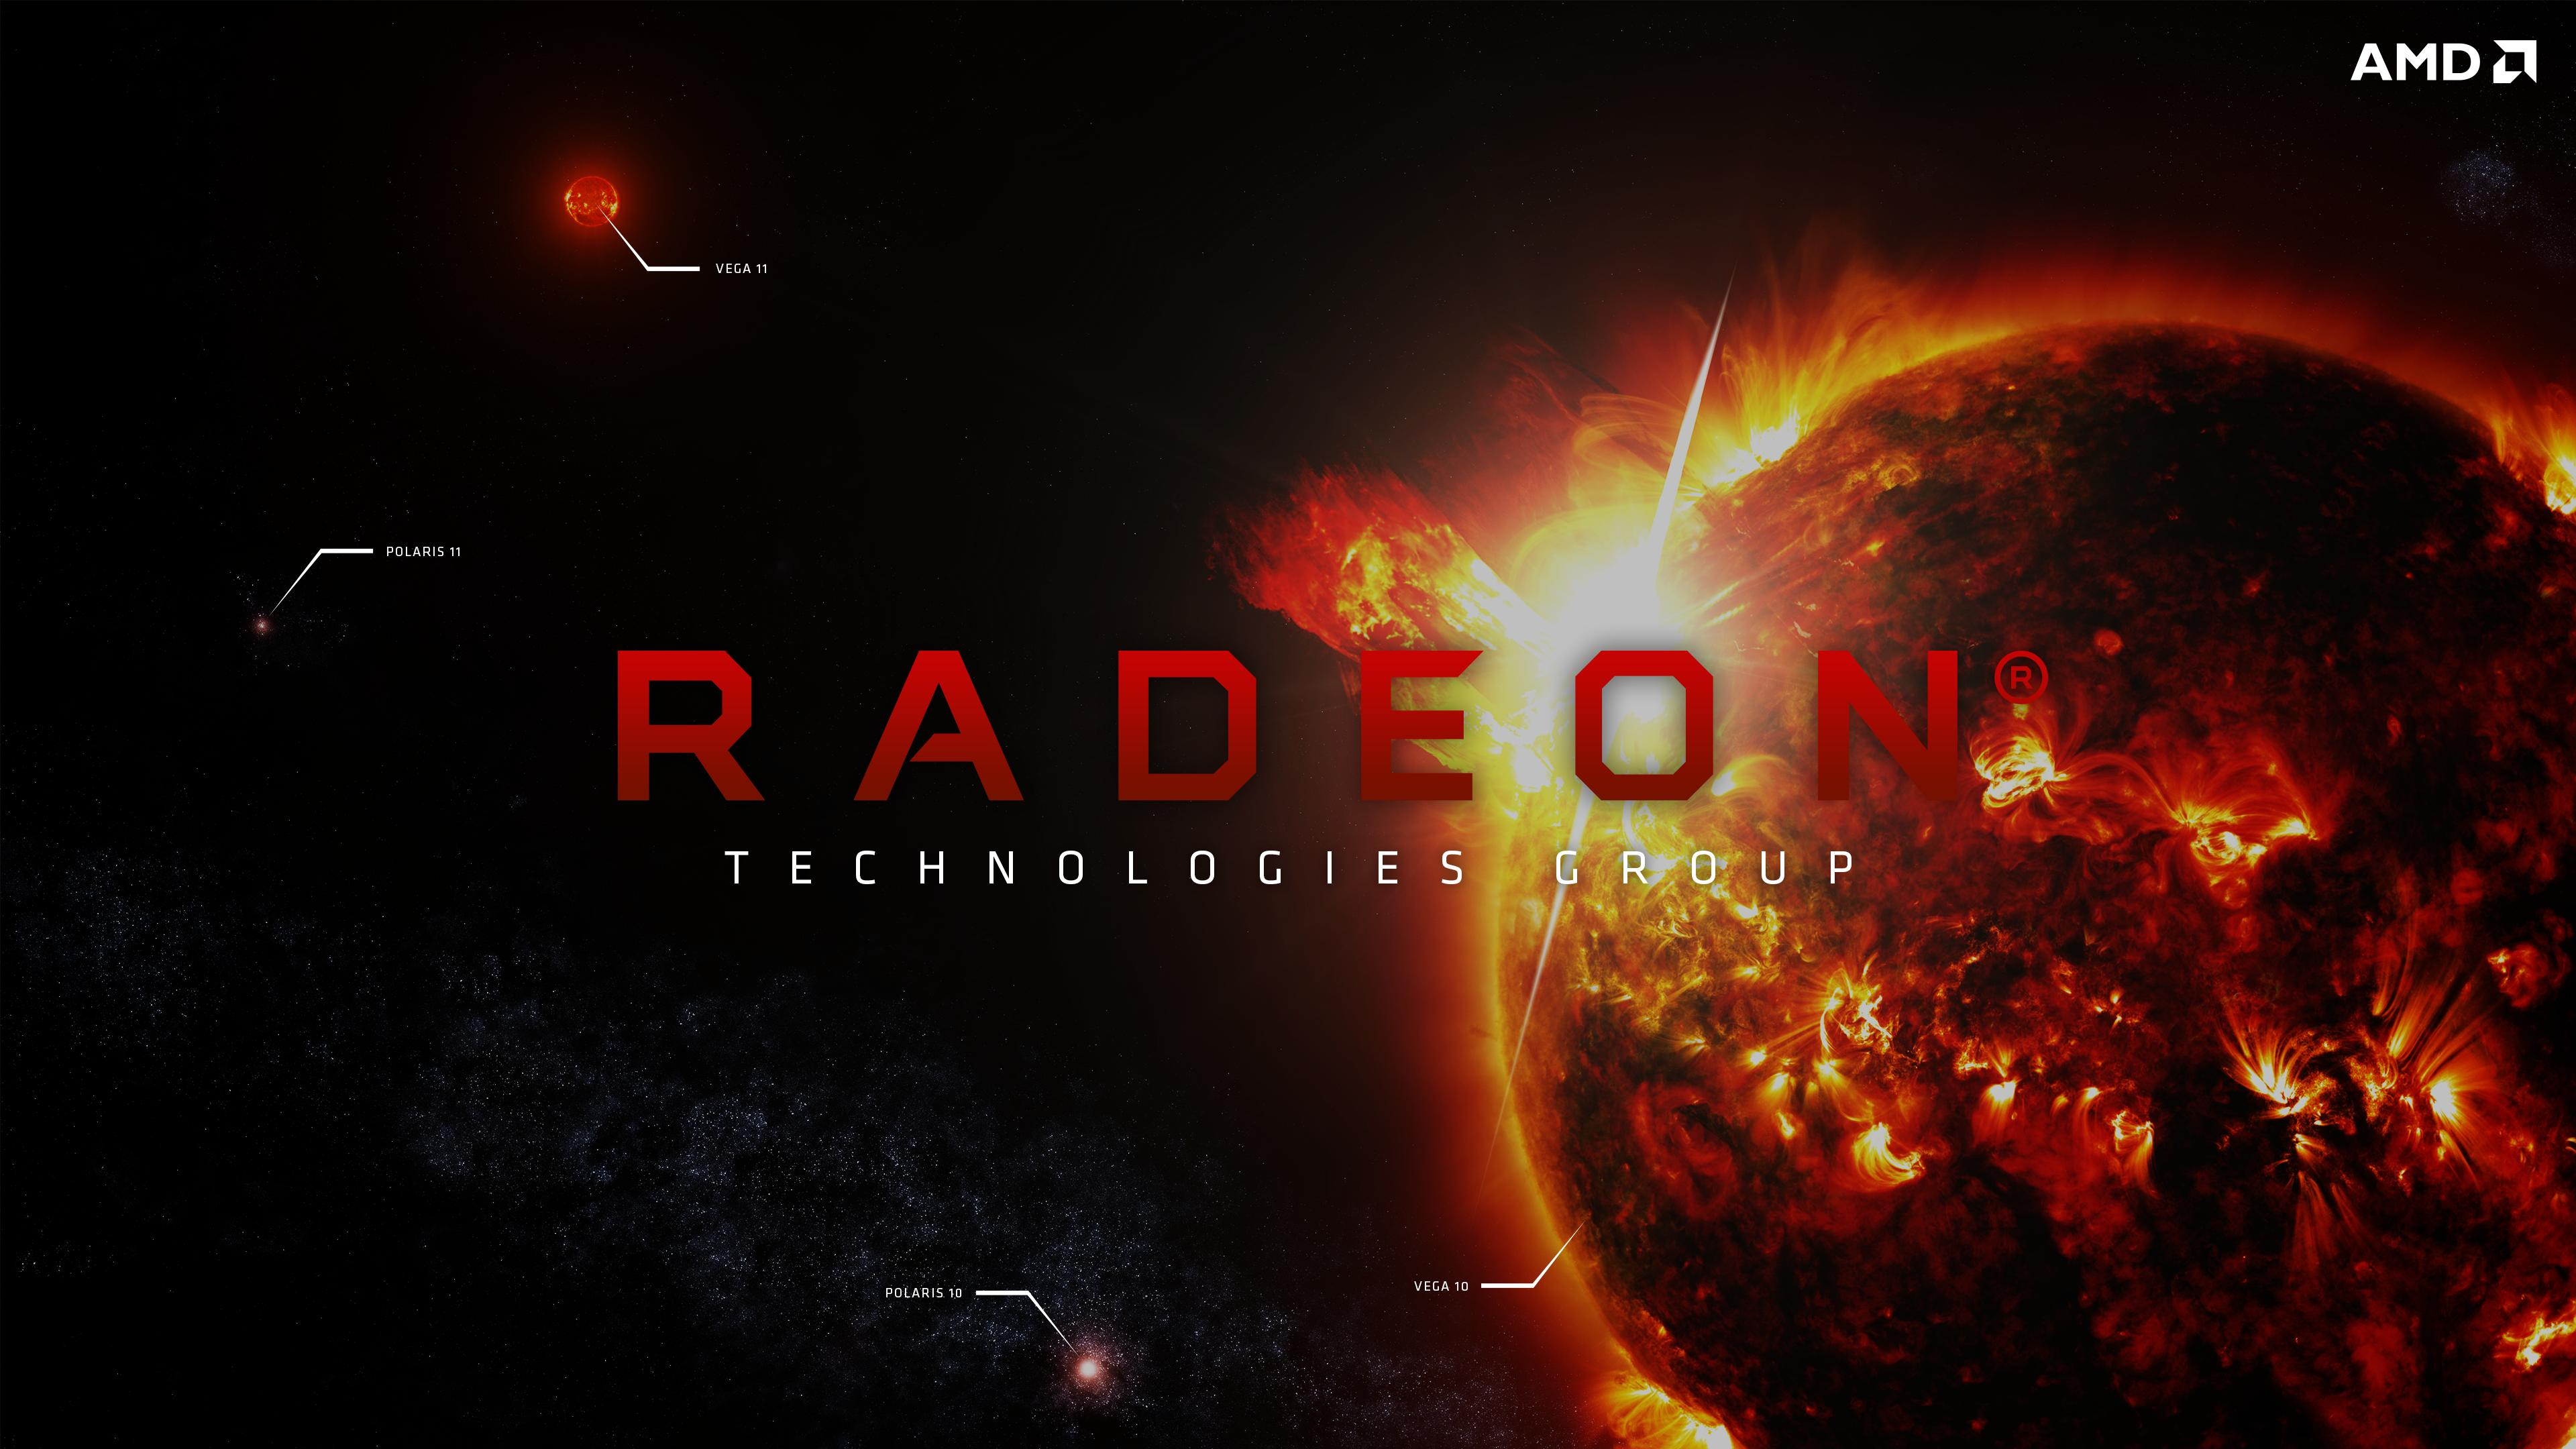 amd wallpapers teamstealth - photo #14